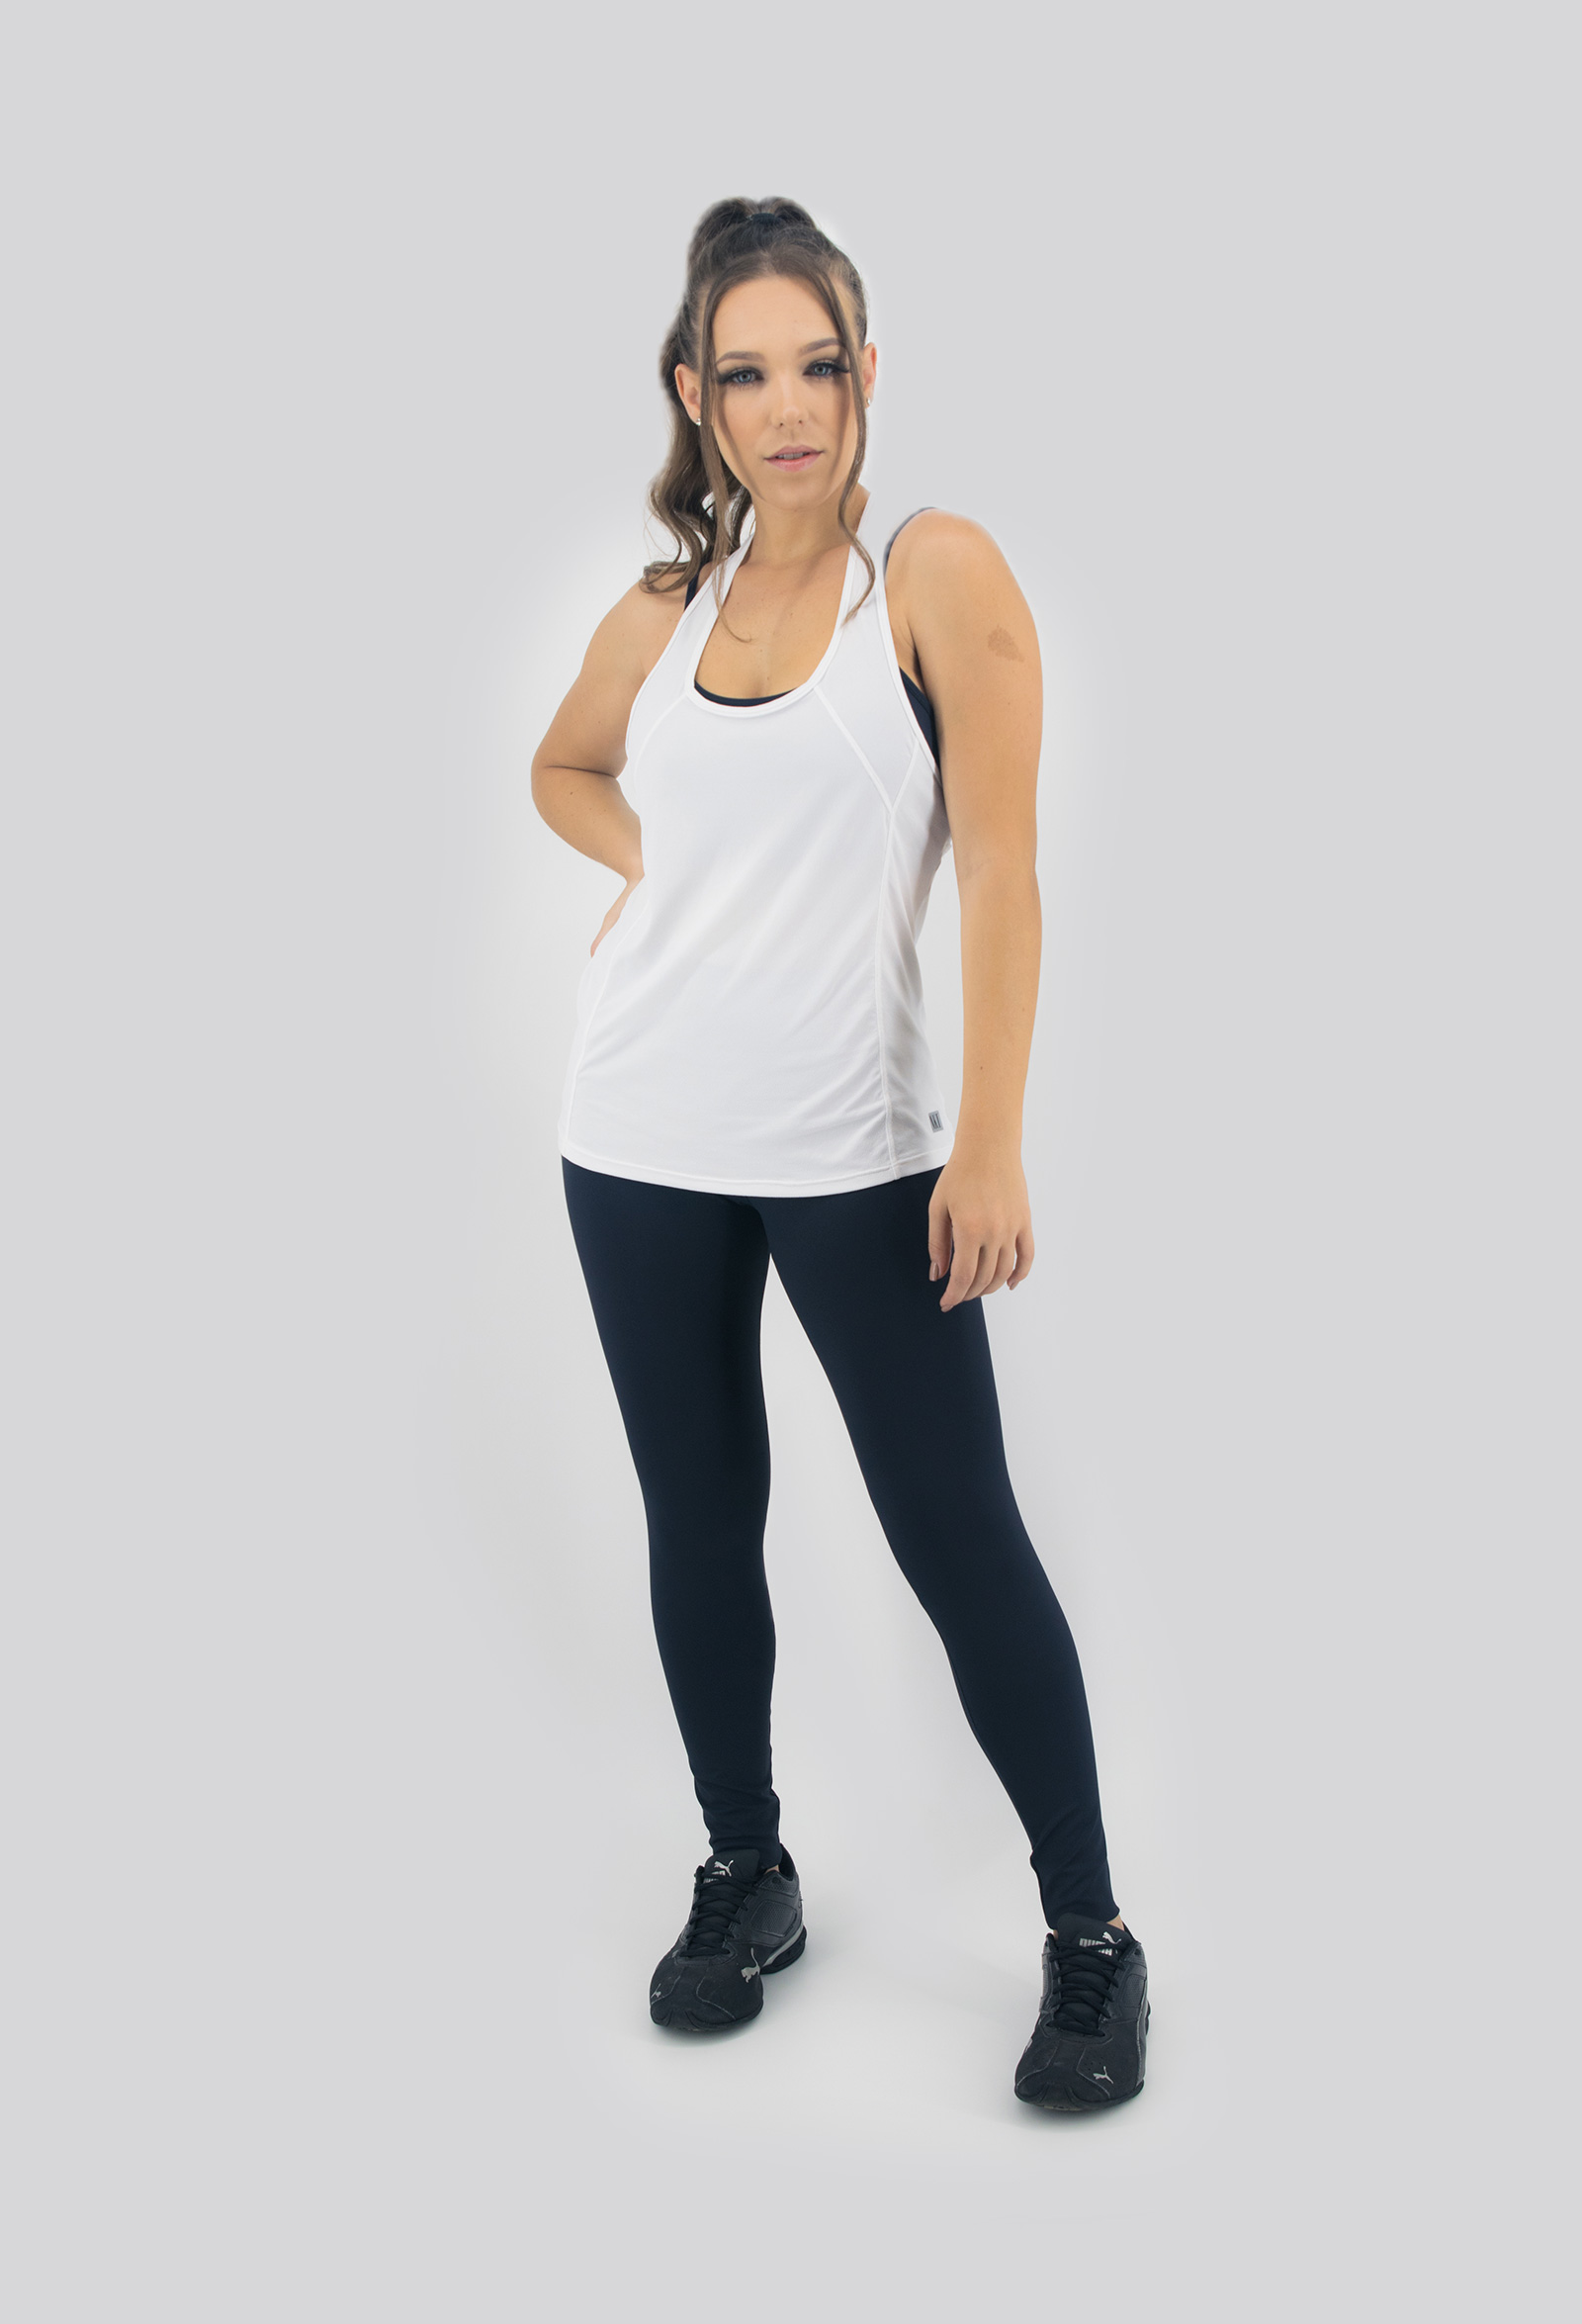 Regata Clipping Branca, Coleção Move Your Body - NKT Fitwear Moda Fitness